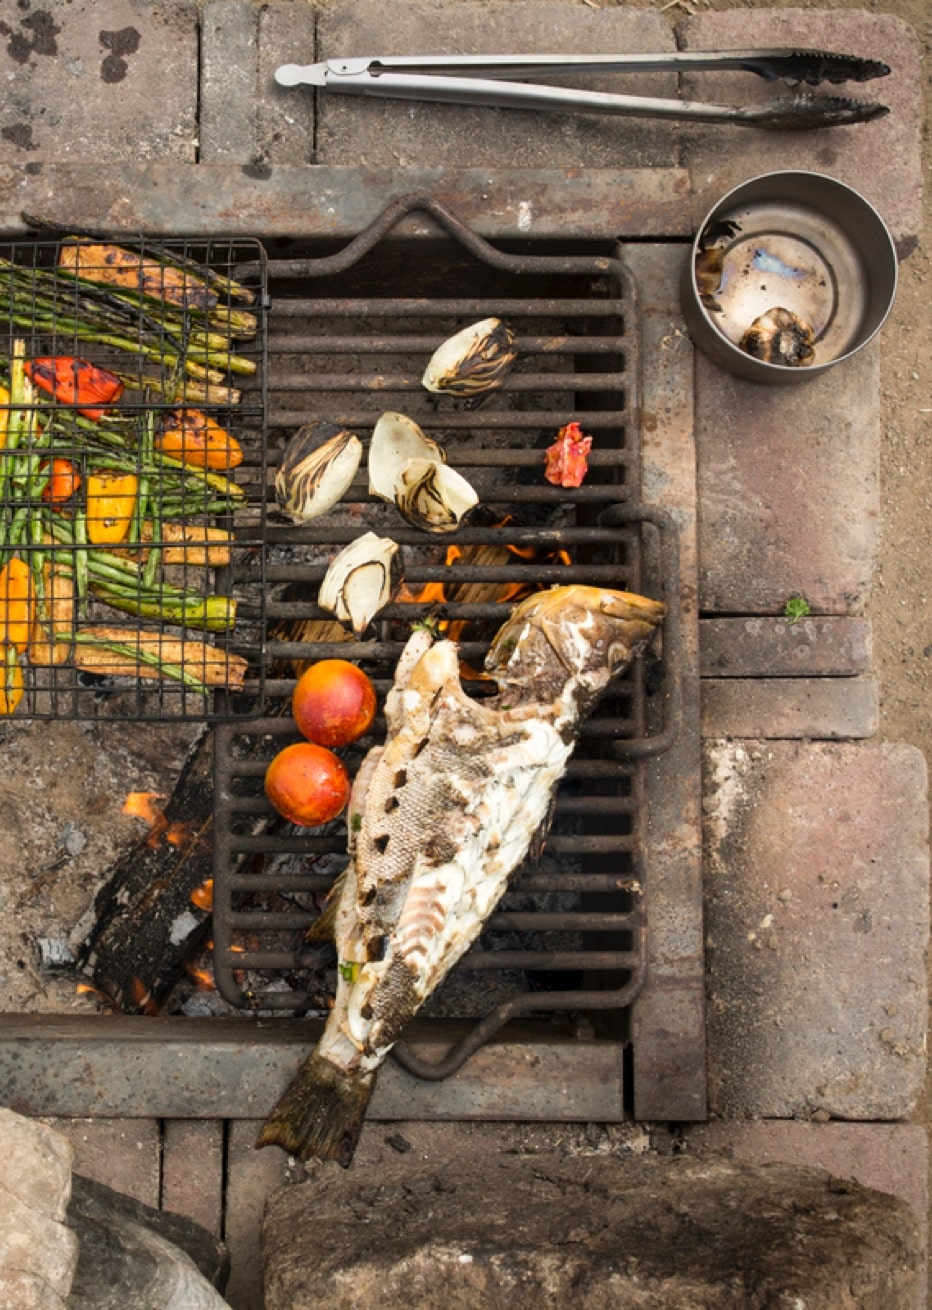 Fish being grilled at campsite along with veggies